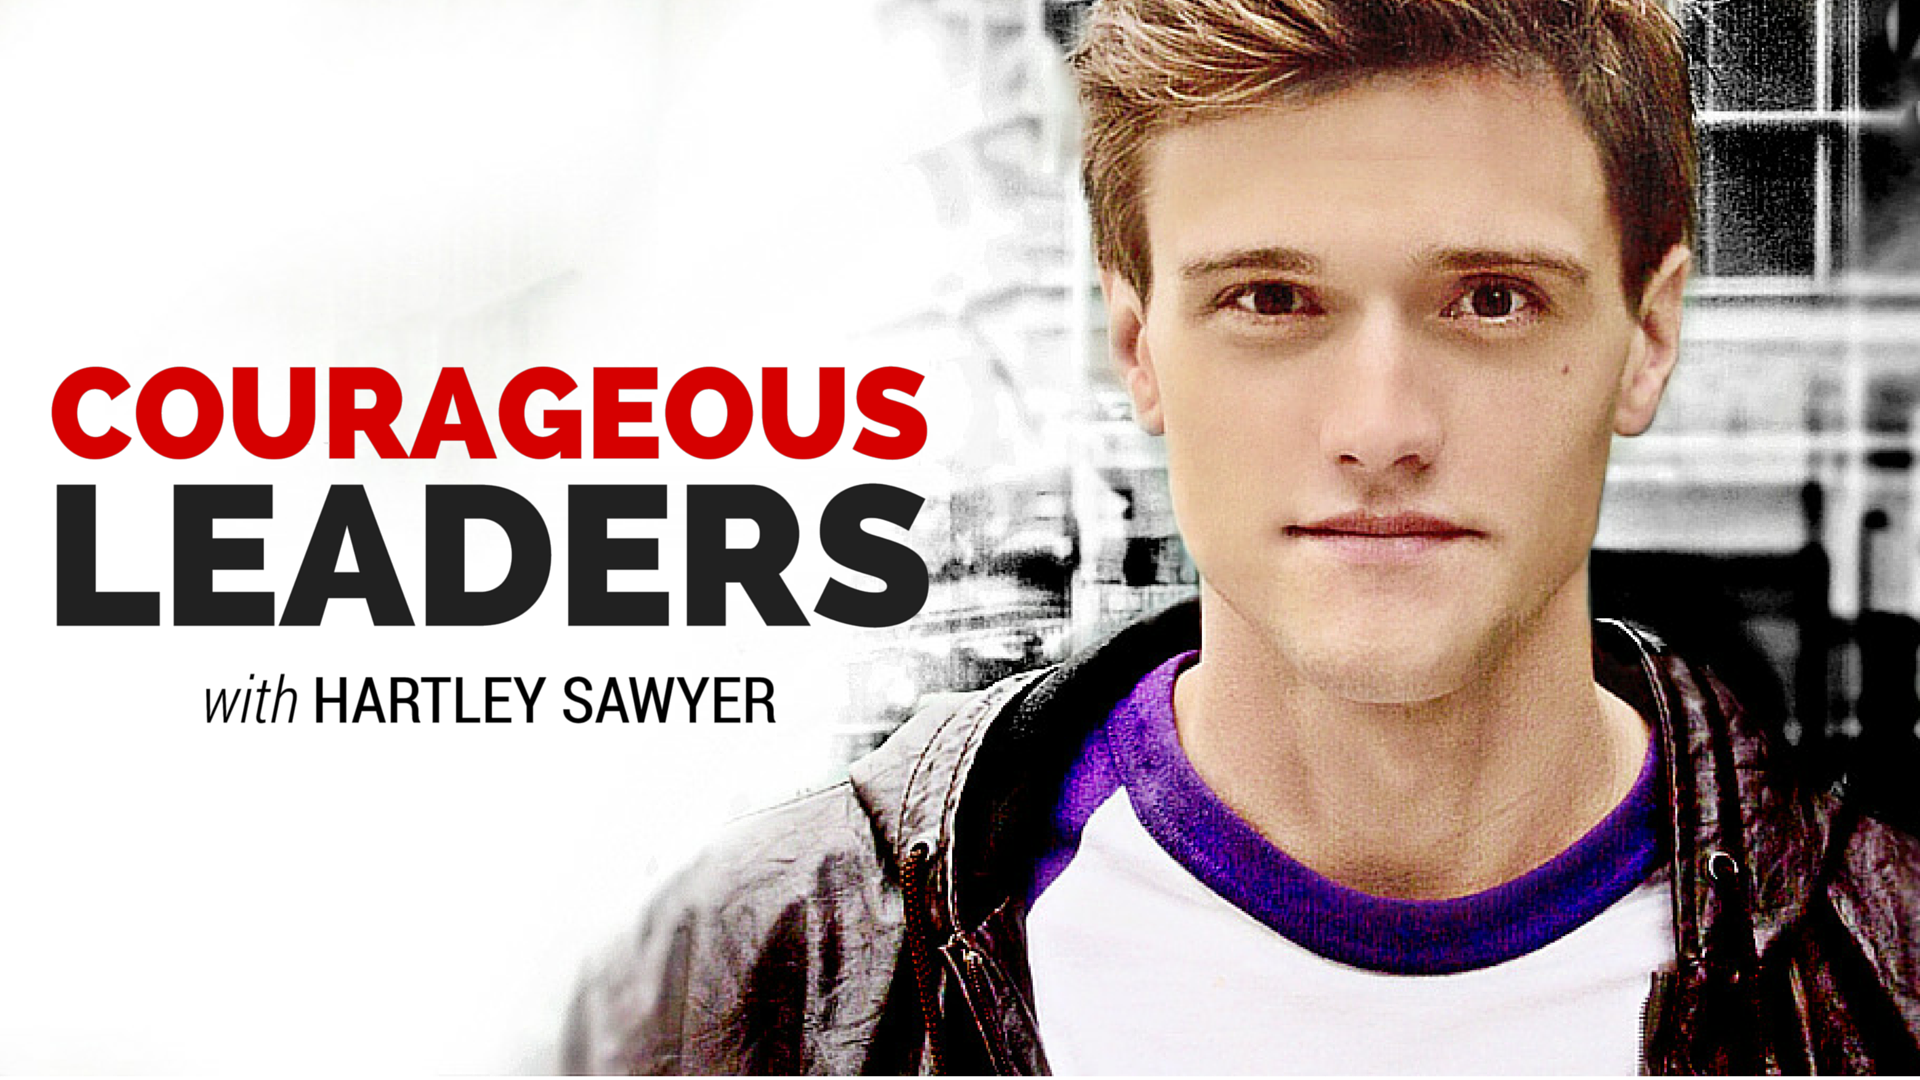 hartley-sawyer-to-host-vox-series-courageous-leaders.jpg